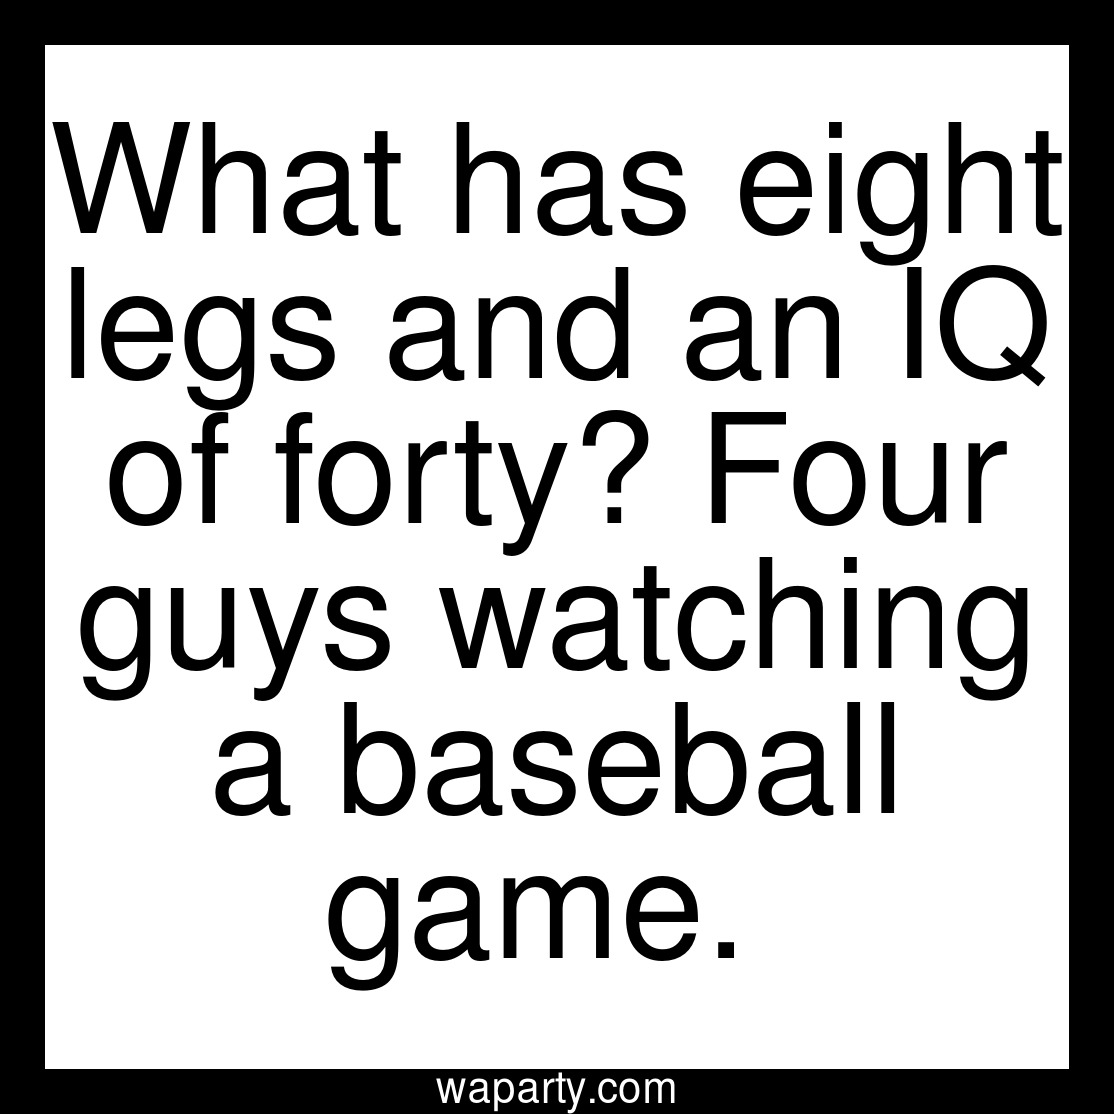 What has eight legs and an IQ of forty? Four guys watching a baseball game.